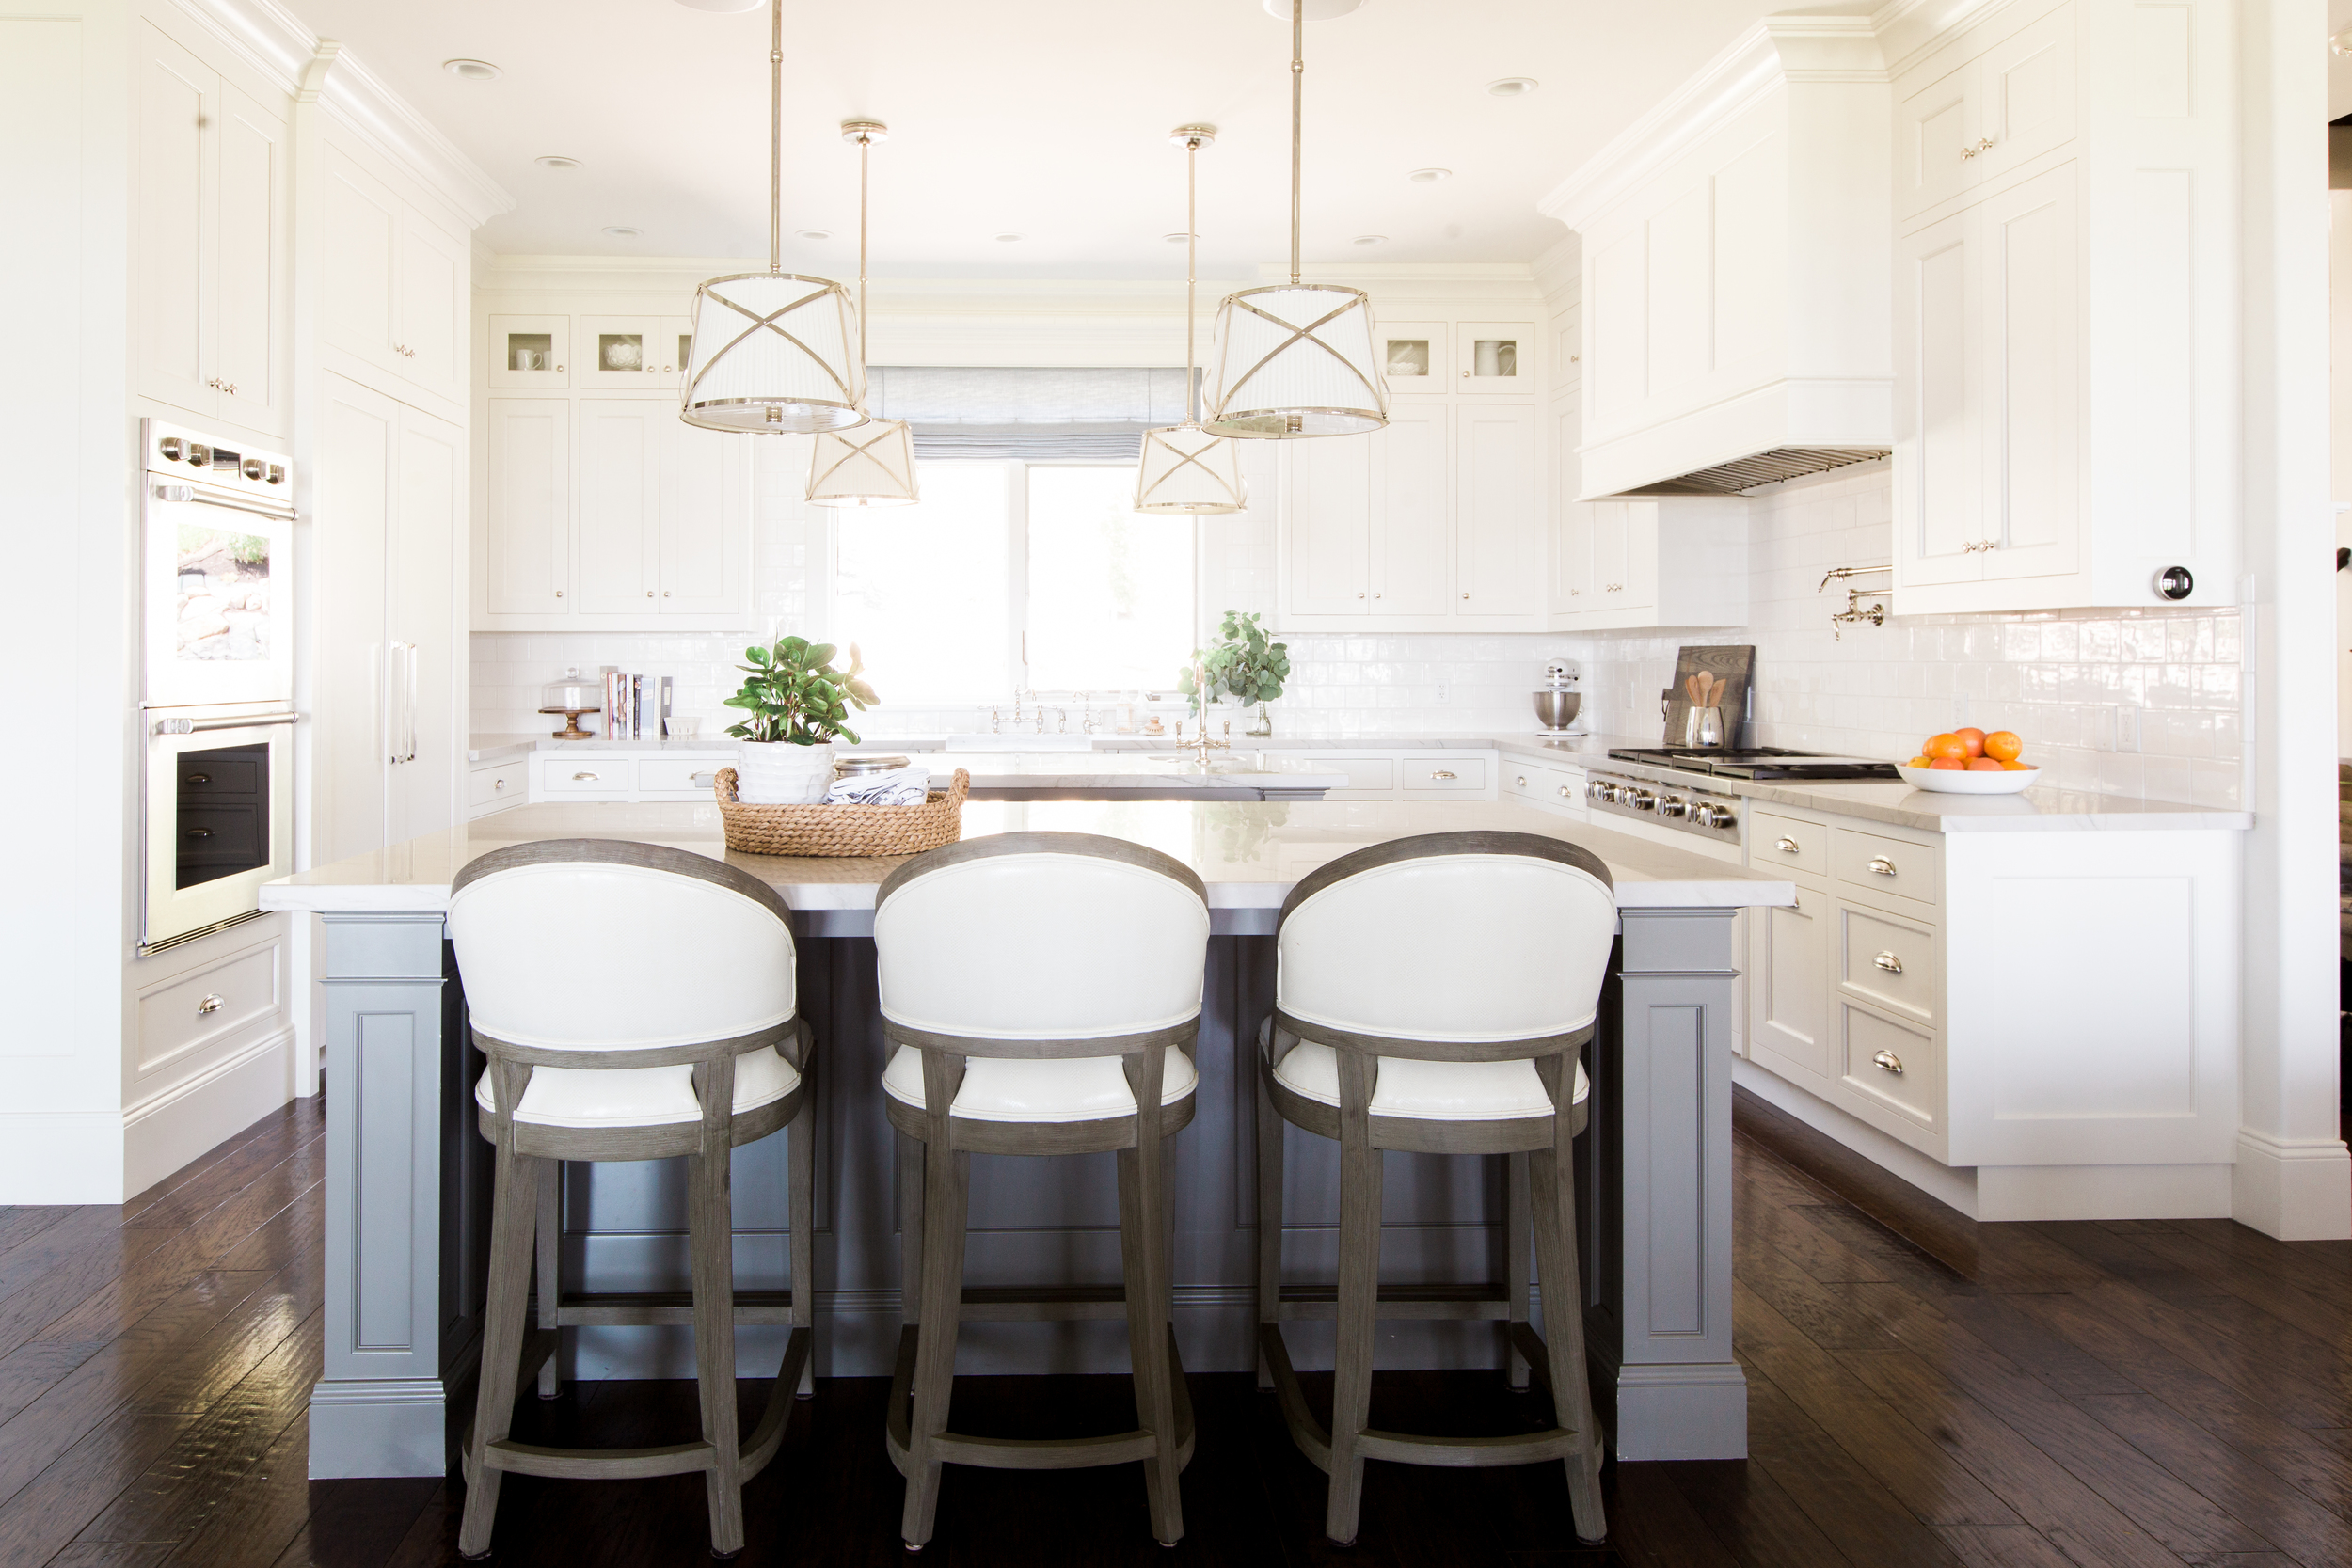 Creamy white cabinets and gray islands || Studio McGee